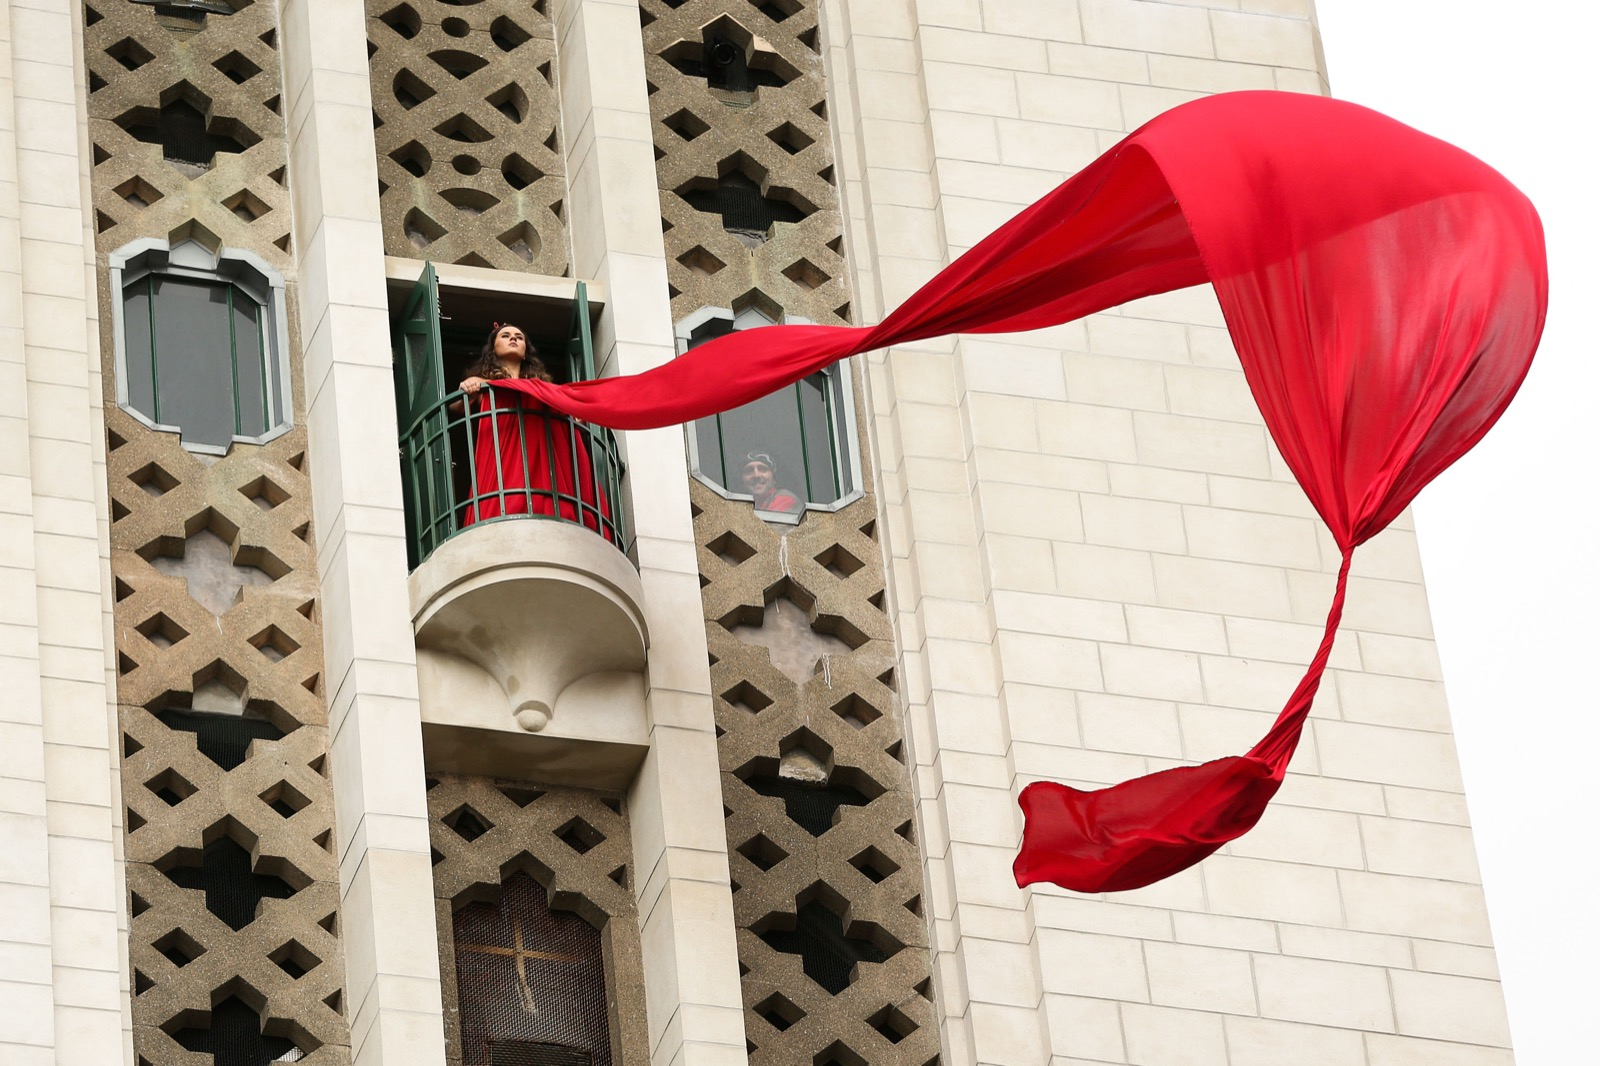 A performer unfurls a red banner from the Carillion during opening of the Pukeahu National War Memorial Park in Wellington, New Zealand. Hagen Hopkins/Getty Images